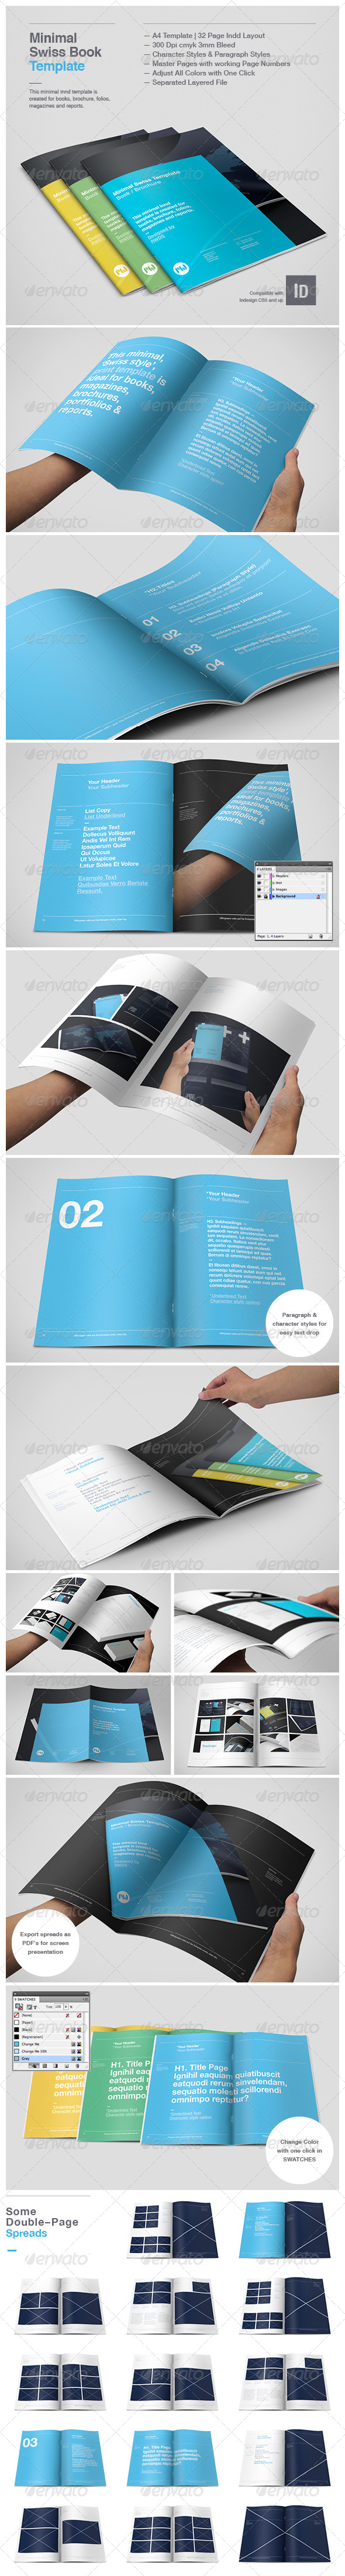 GraphicRiver Minimal Swiss Print Template 4137040